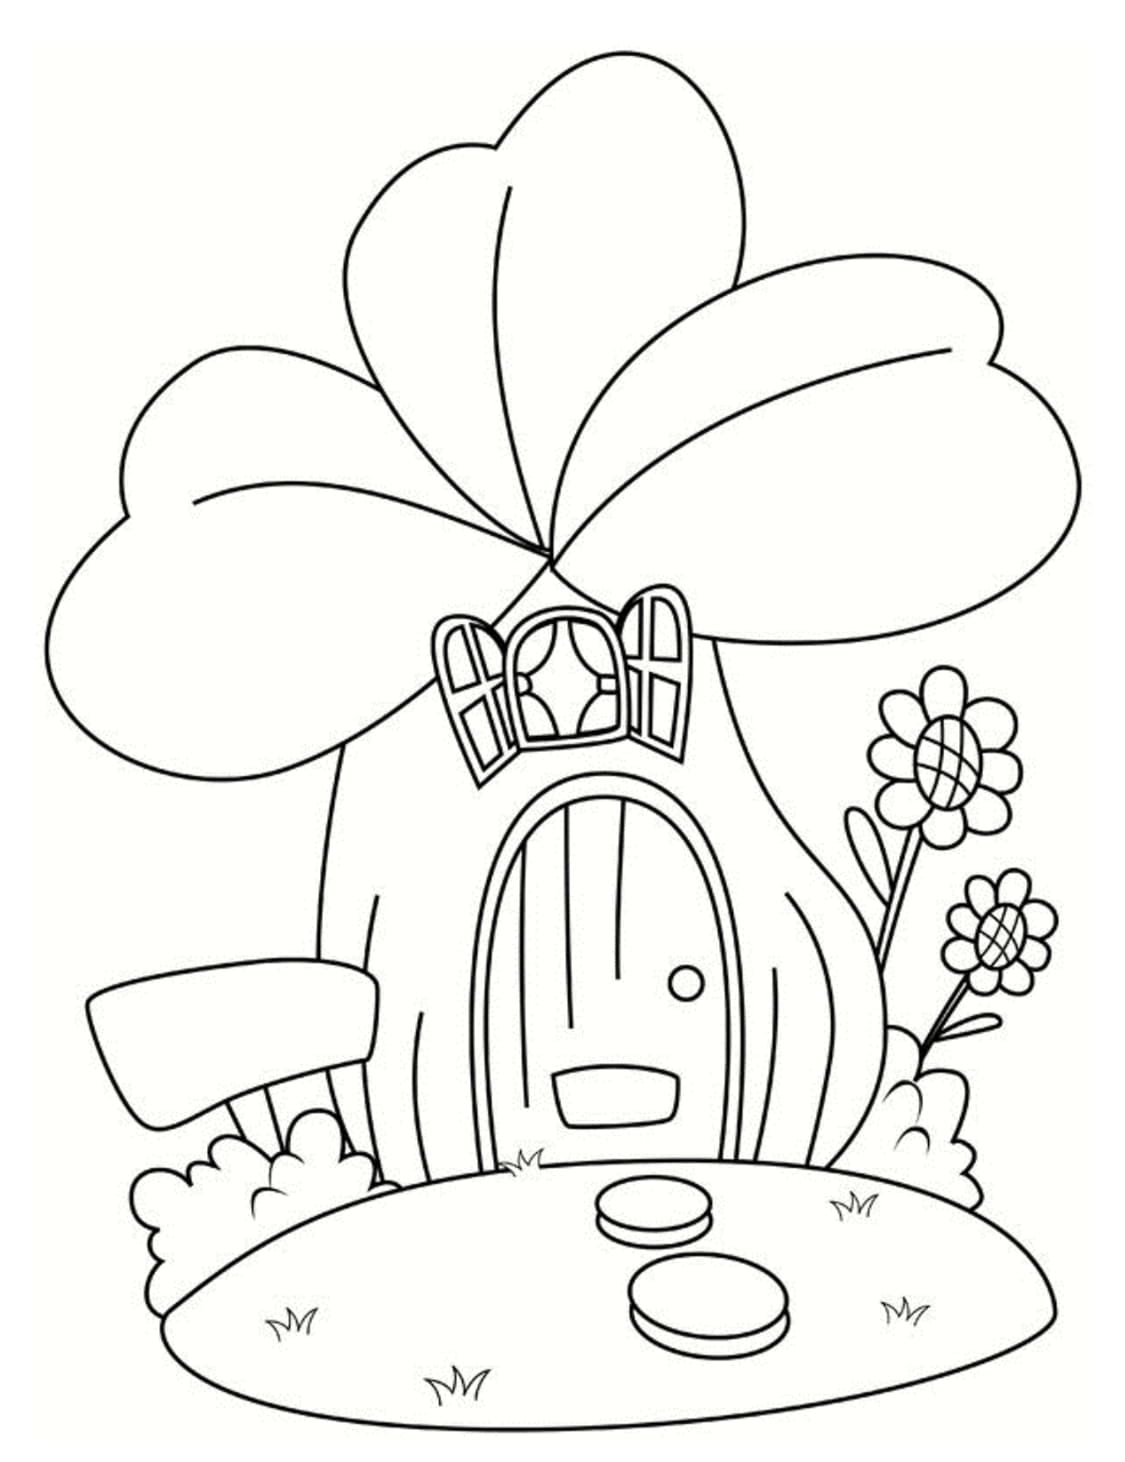 Coloring pages Shamrock. St.Patrick 's Day. Print for free